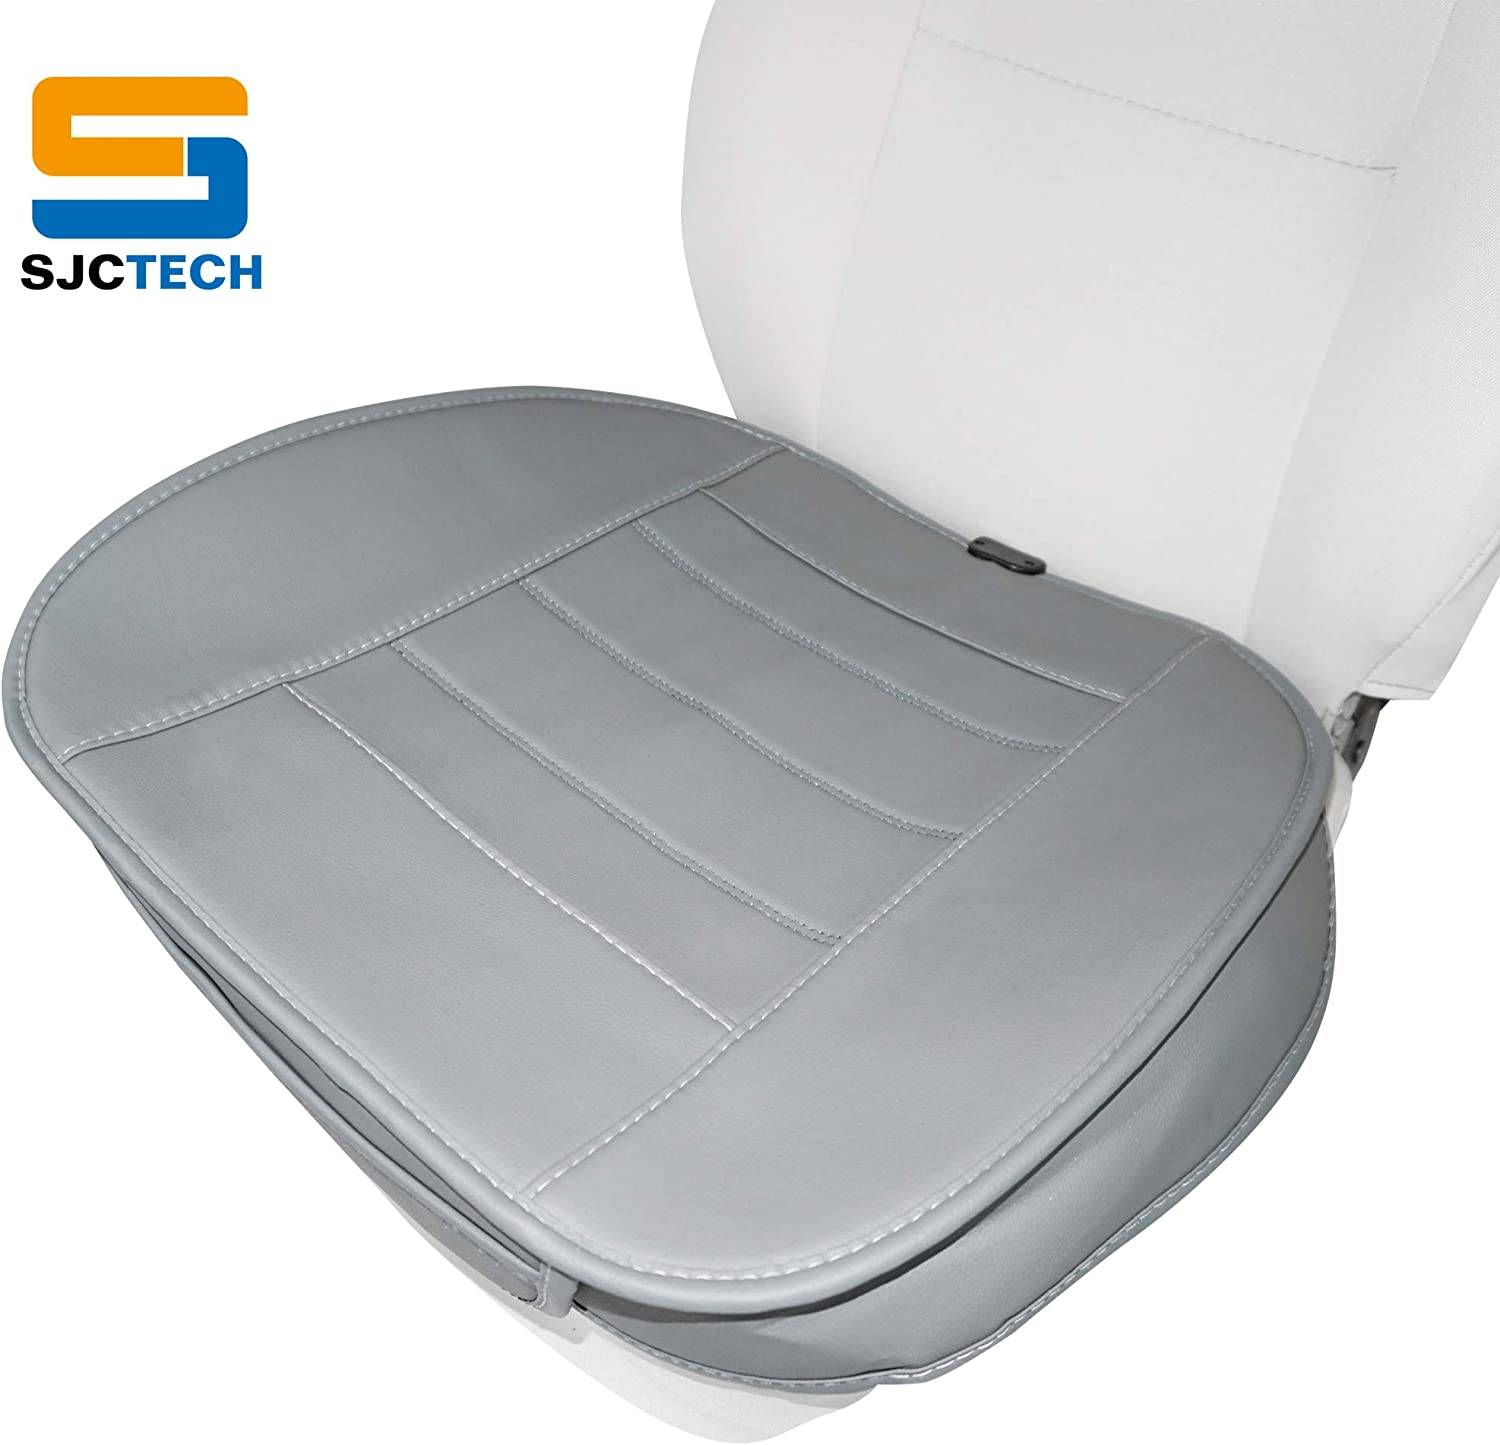 SJC Car Seat Cushion Pad Car Driver Seat Cushion Car Interior Seat Cover Cushion Pad Mat Comfort Seat Protector for Car Office Home Use SJC219R035-US